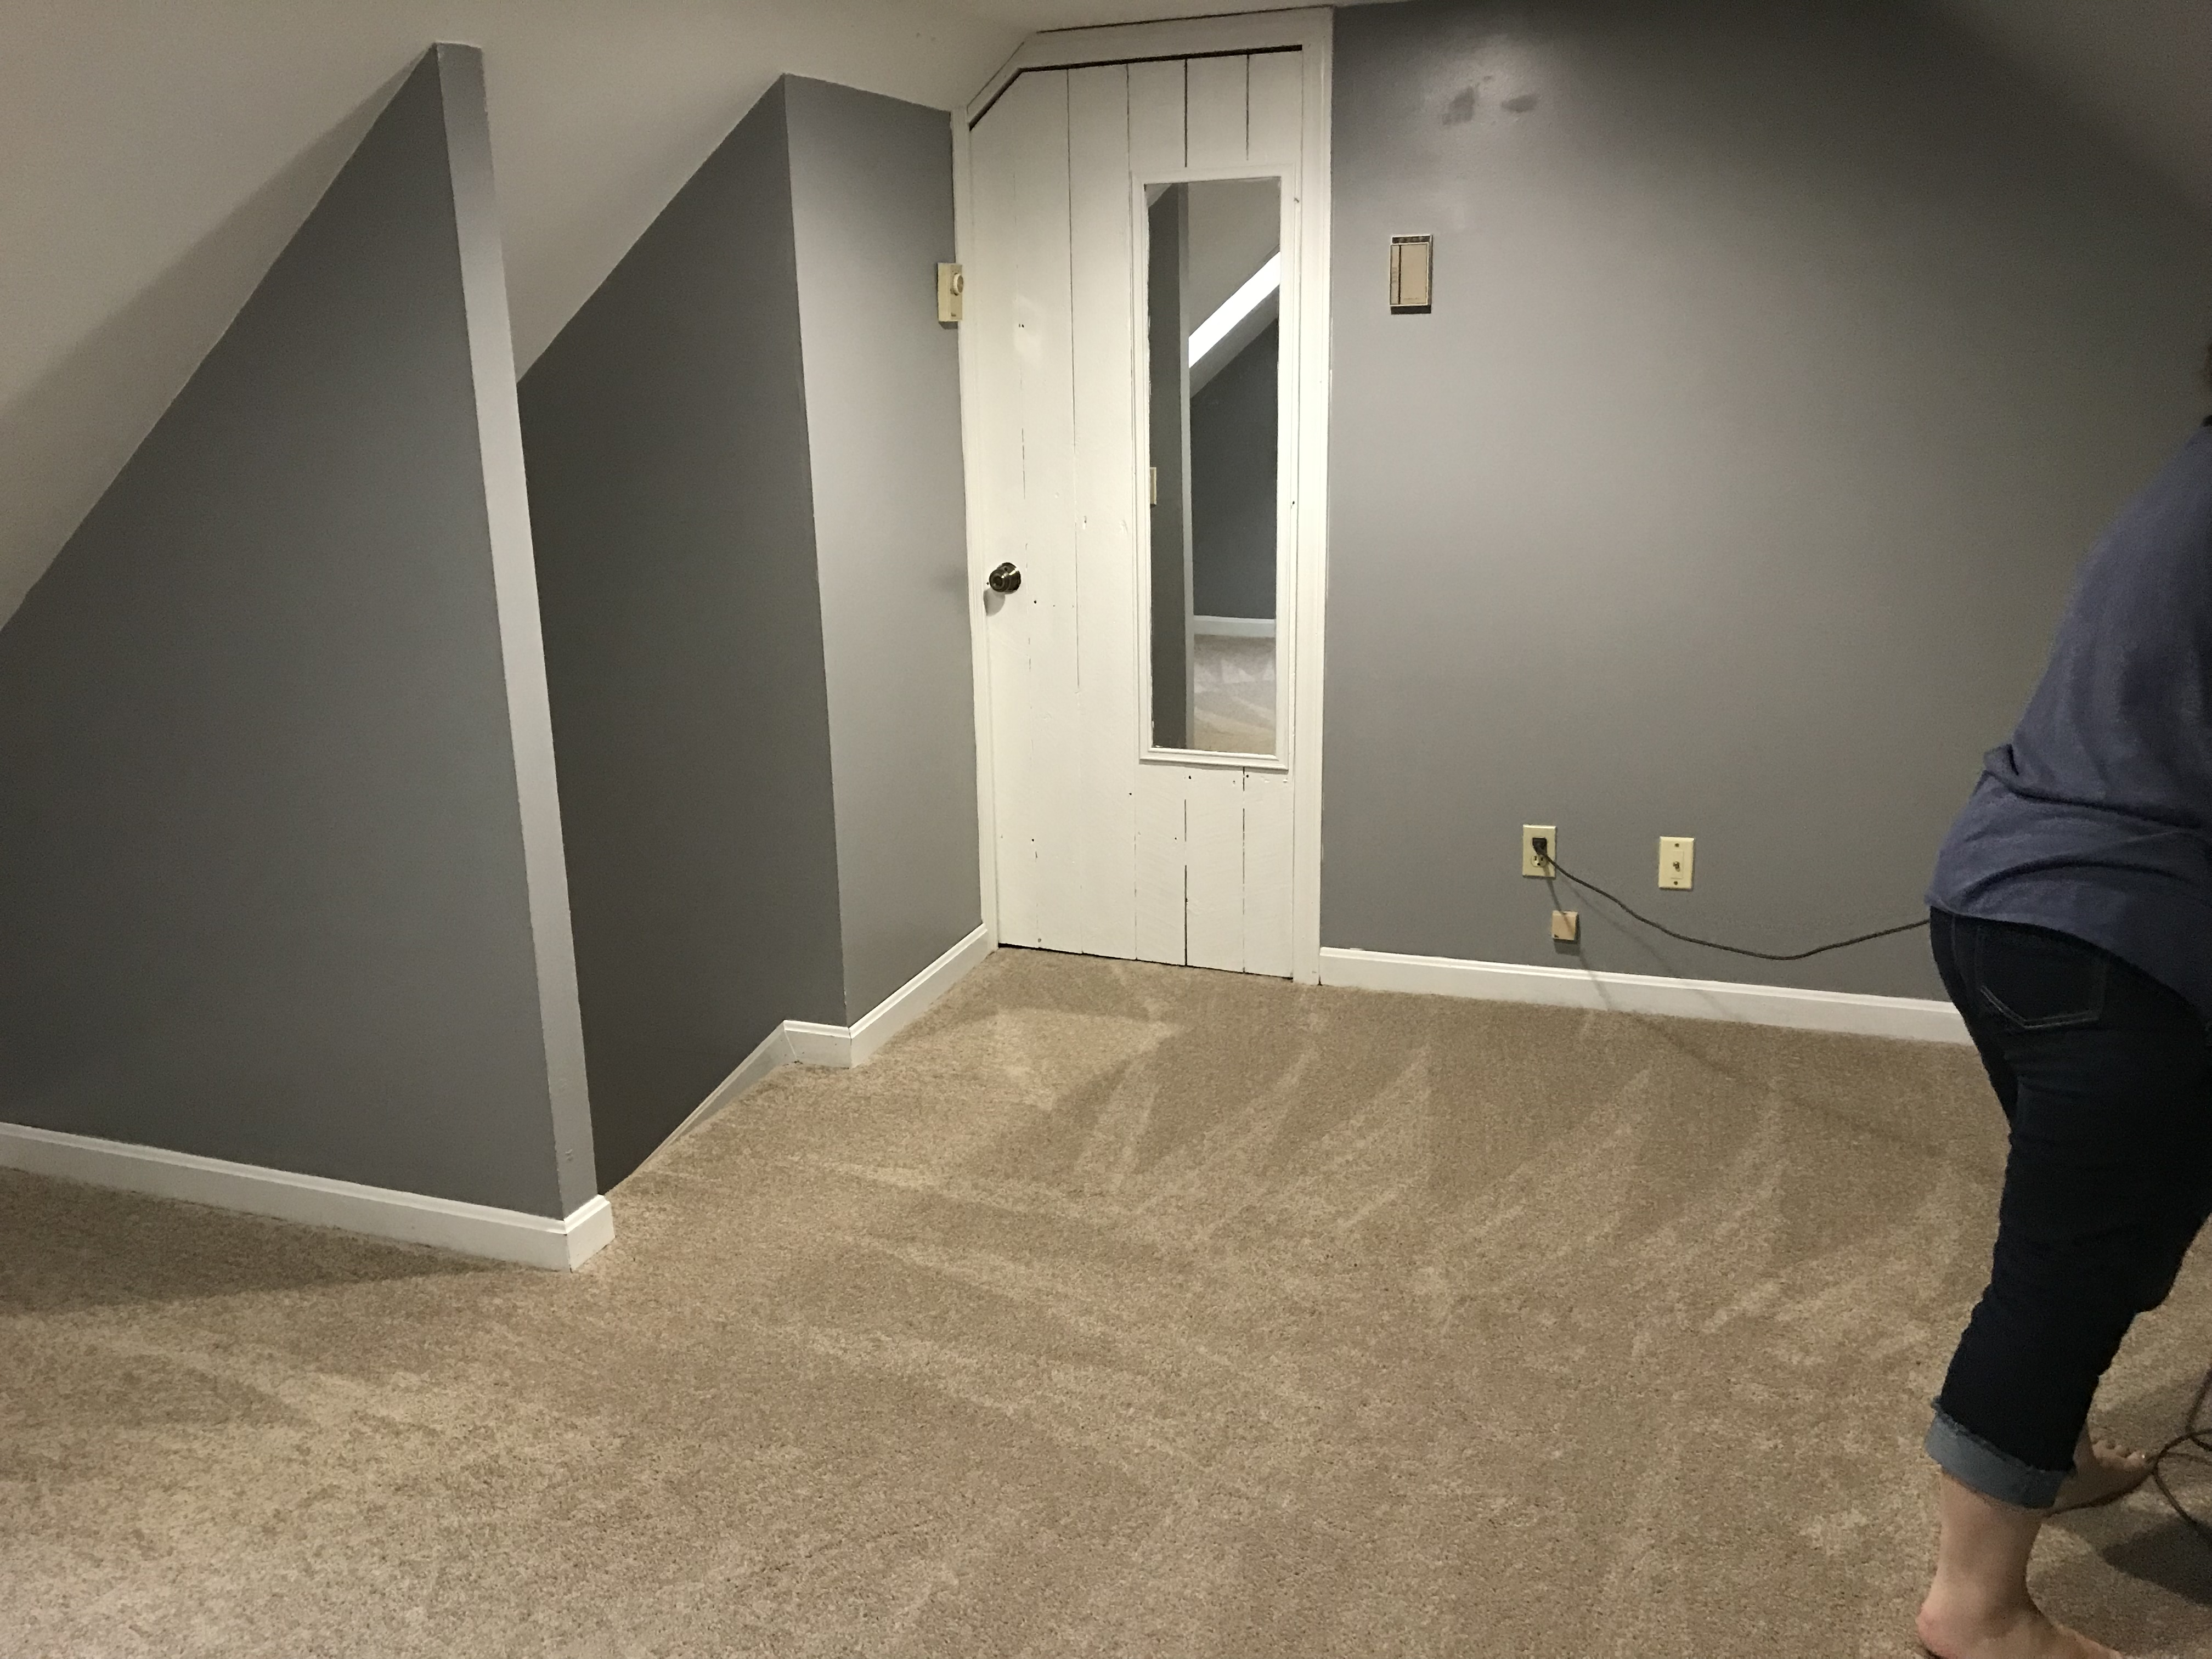 Wonderful National Floors Direct Has Made Me A Believer. Great Flooring At A Fair  Price Installed Quickly And Professionally. Thanks Again Wayne For Helping  Us Take ...